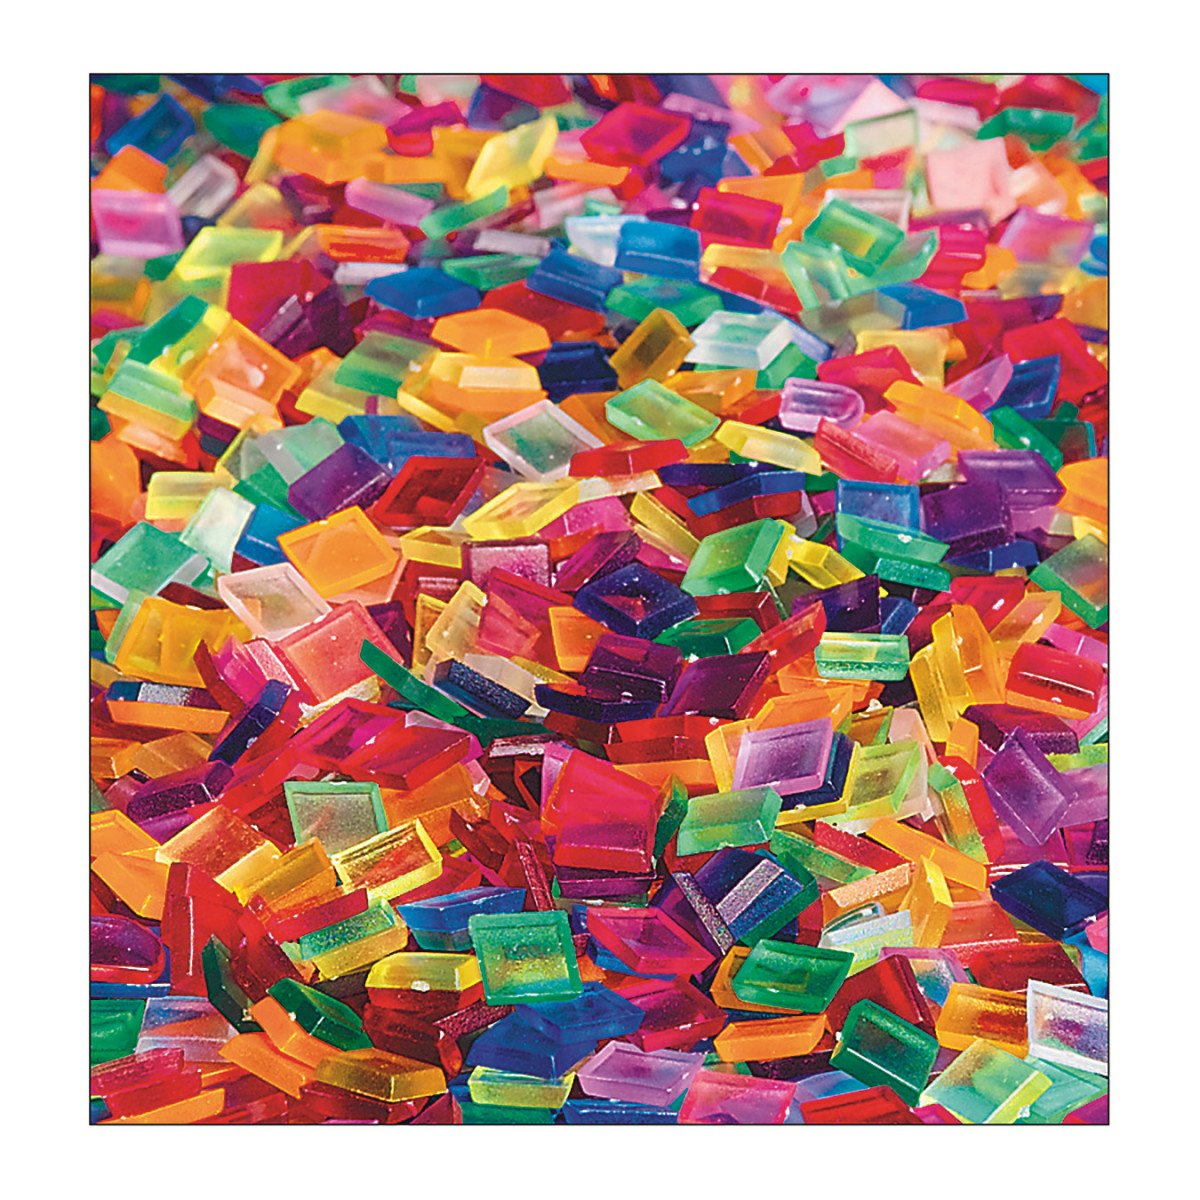 S&S Worldwide Clear Multicolored Square Plastic Tile (bag of 1900) by S&S Worldwide